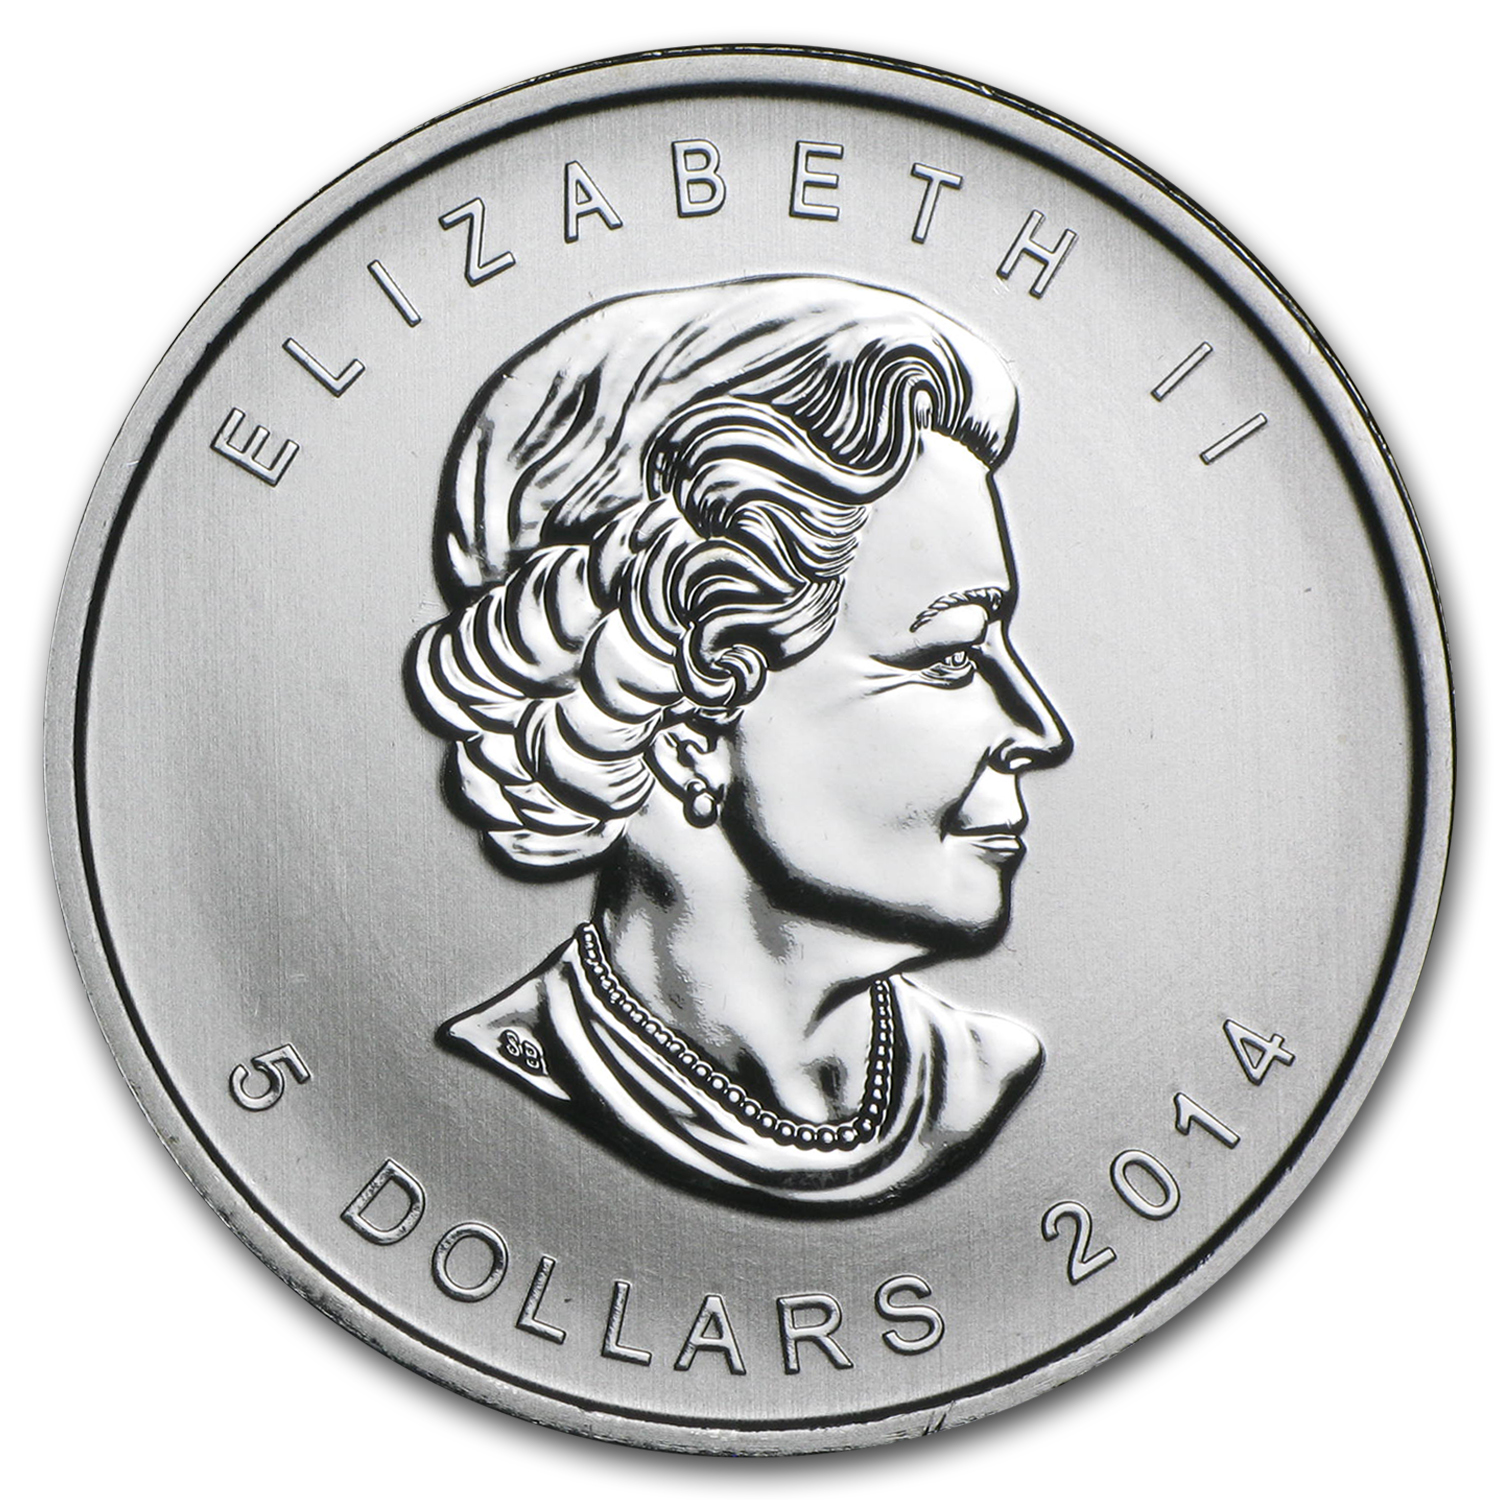 2014 1 oz Silver Canadian Coin - Five Blessings